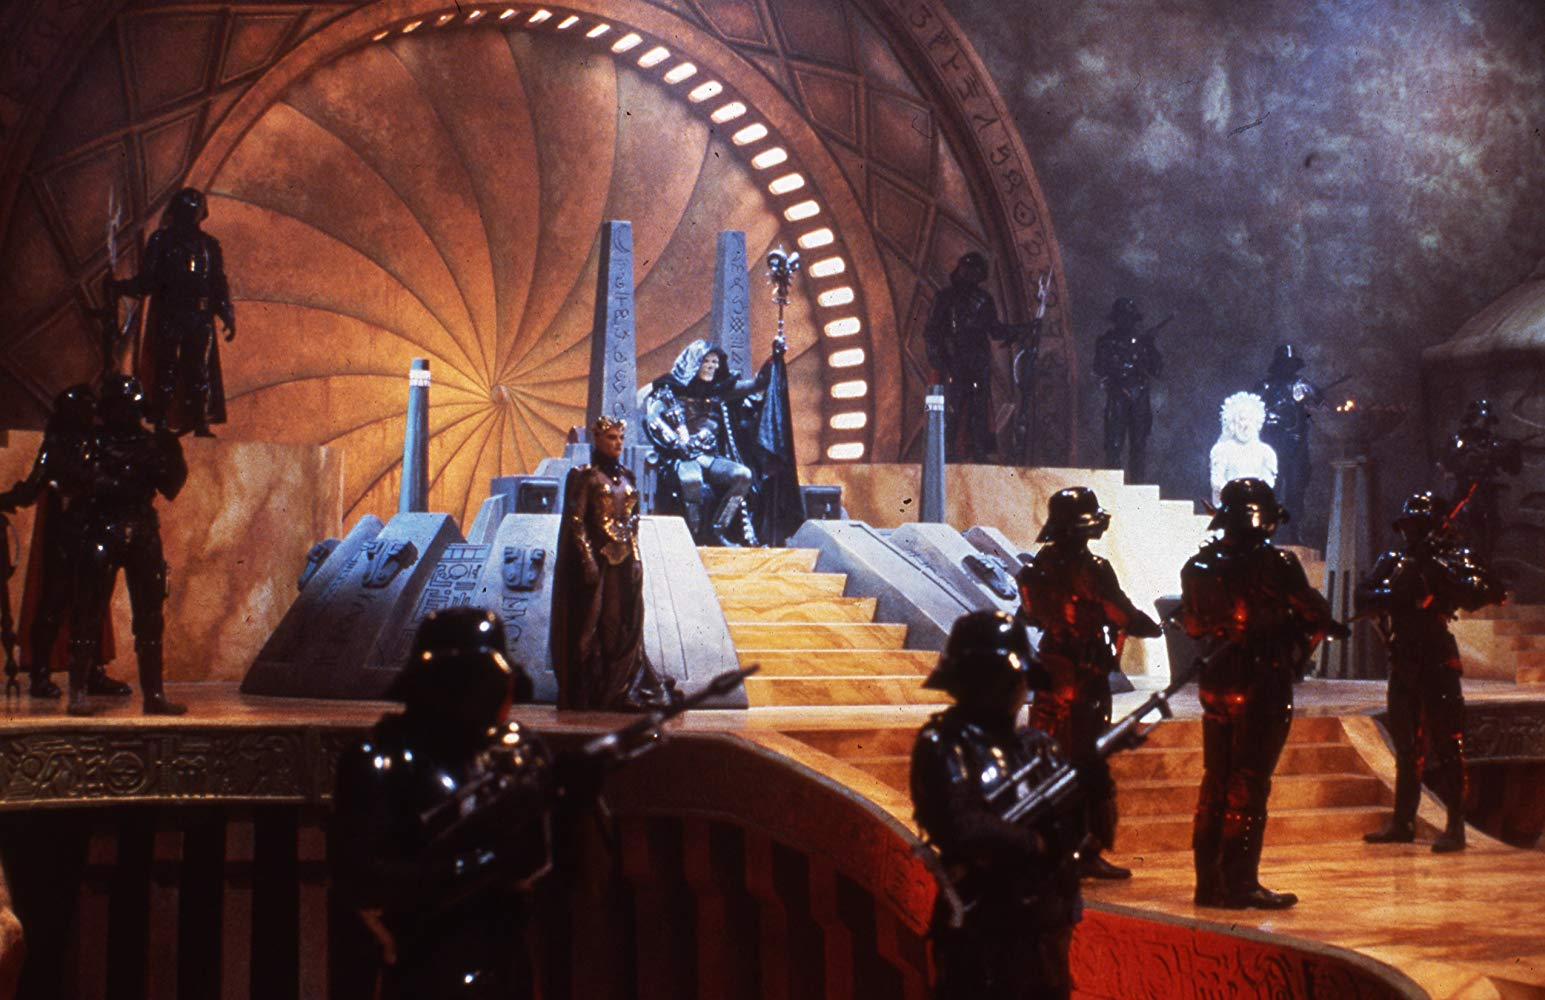 The superb sets for the film. Skeletor's throne room with Skeleteor (Frank Langella) seated and Evil-Lyn (Meg Foster) stand to his left in Masters of the Universe (1987)